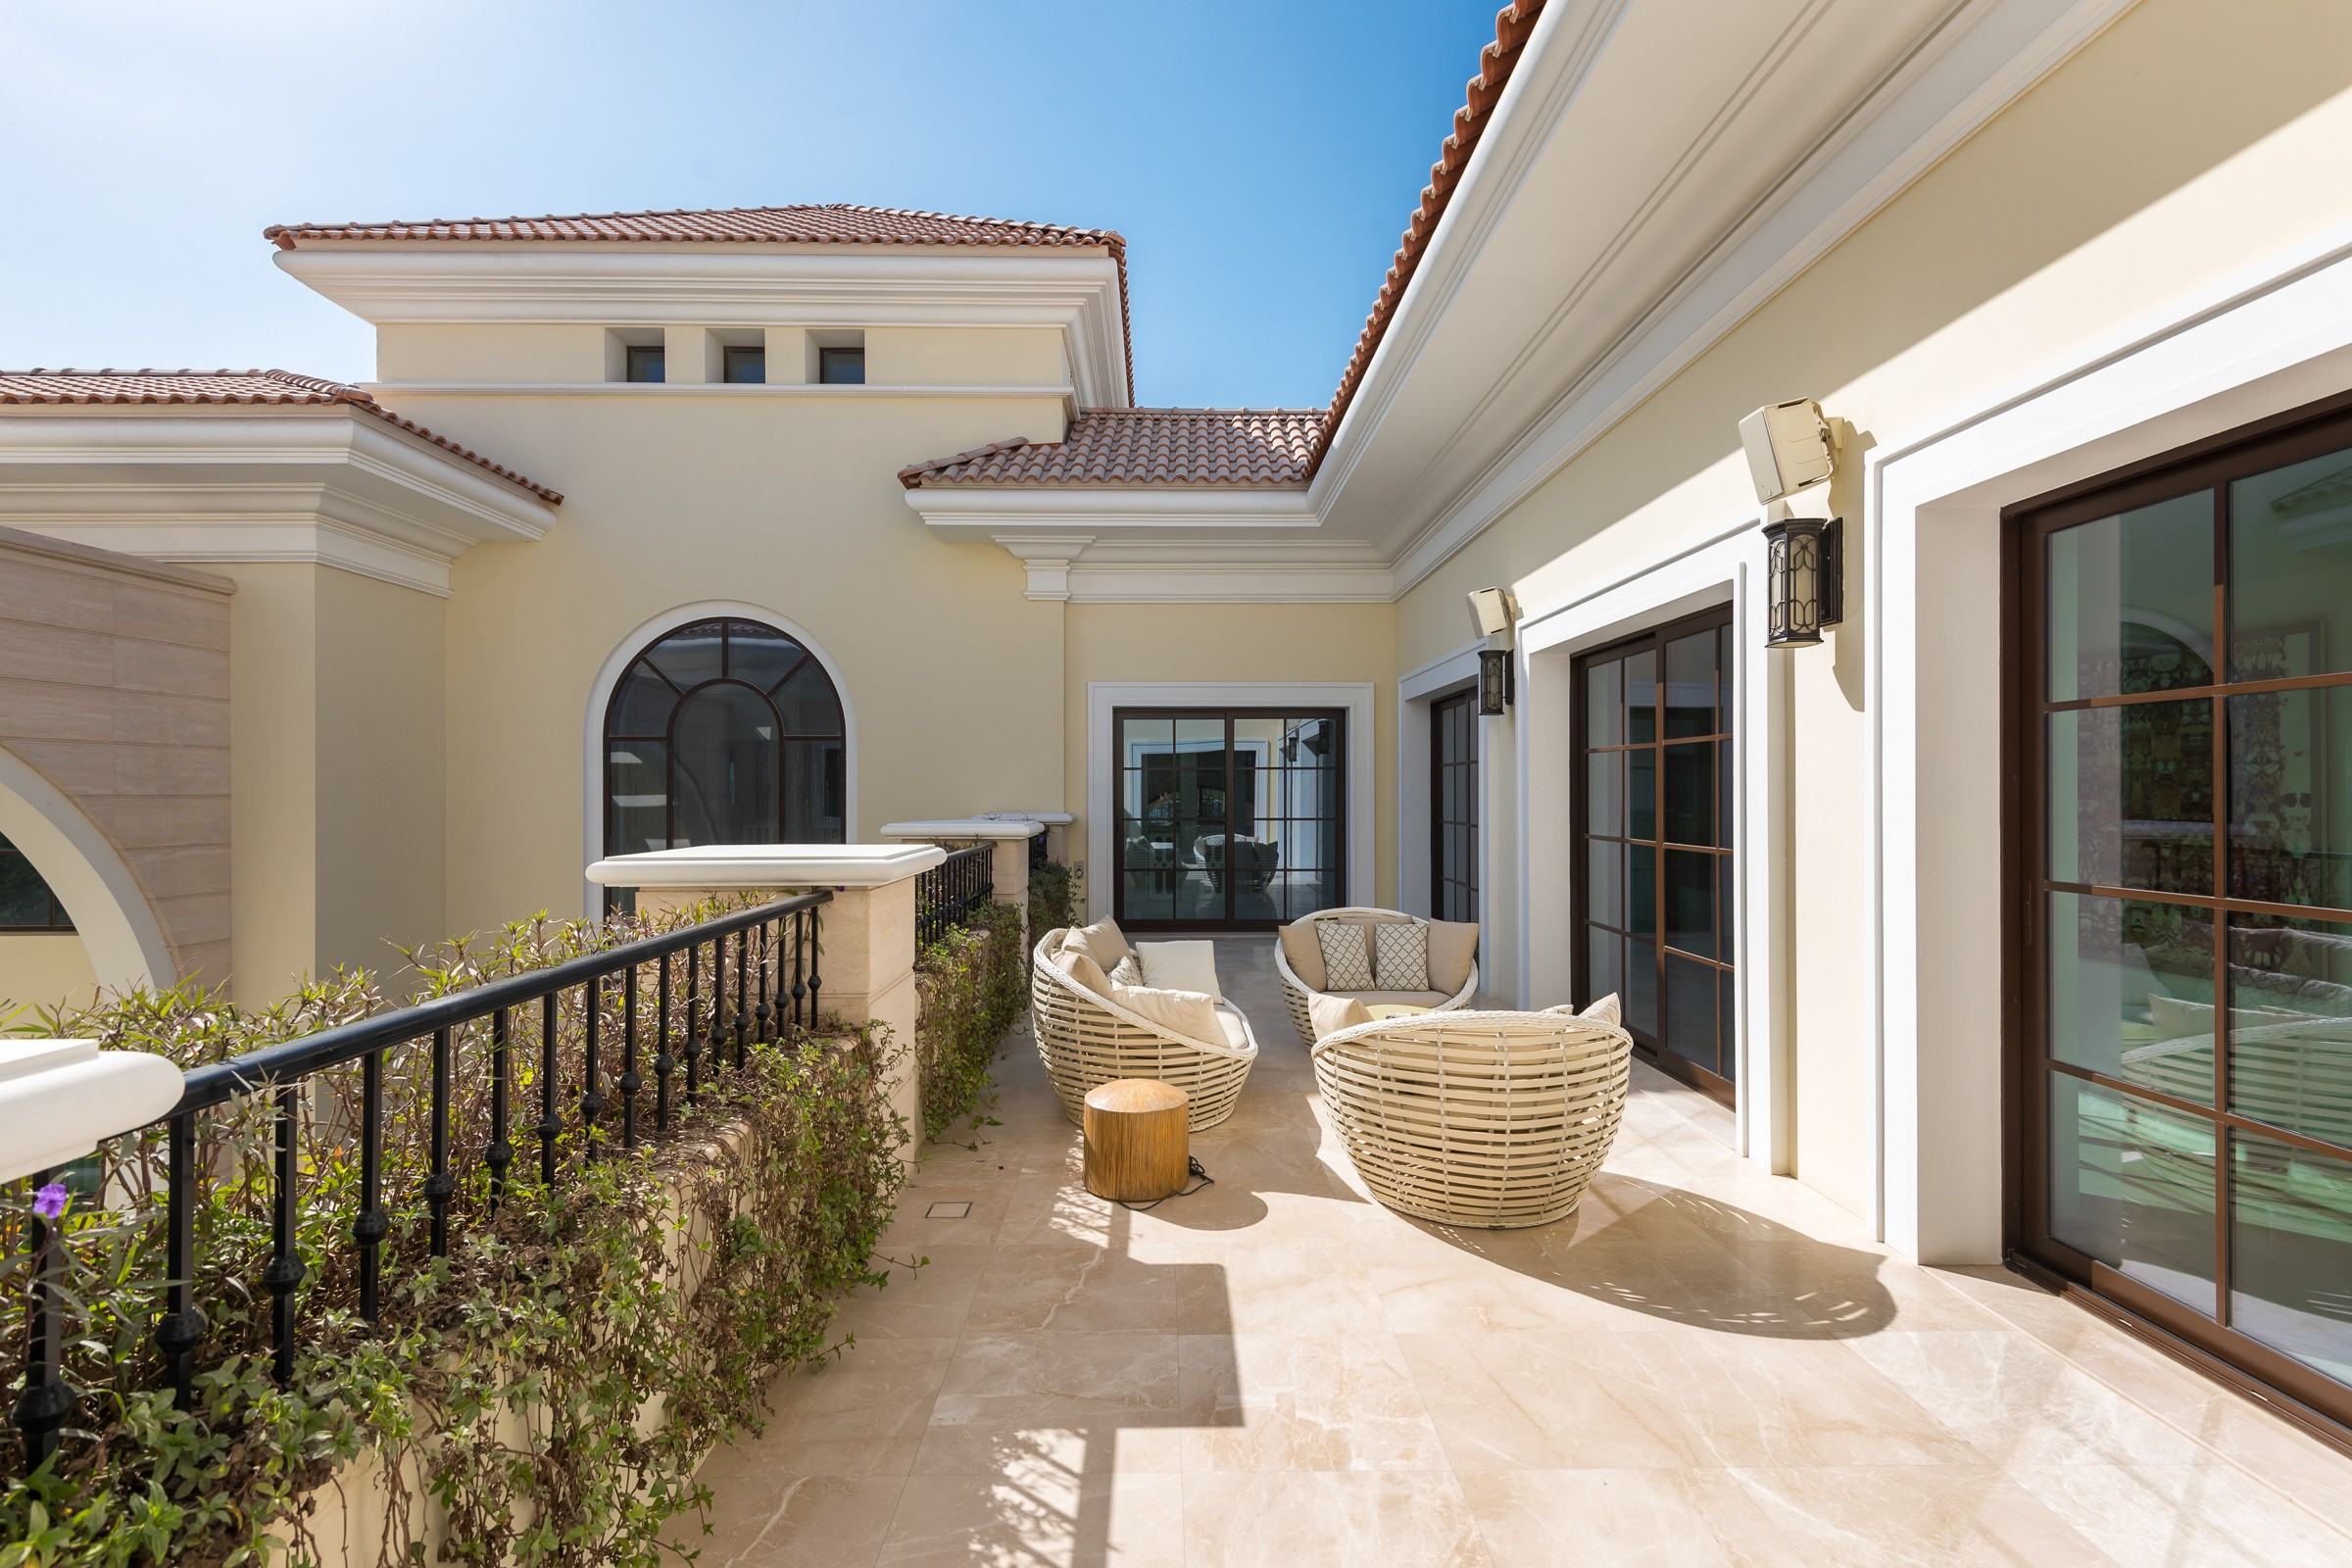 Huge Mansion Mediterranean Style Private Location